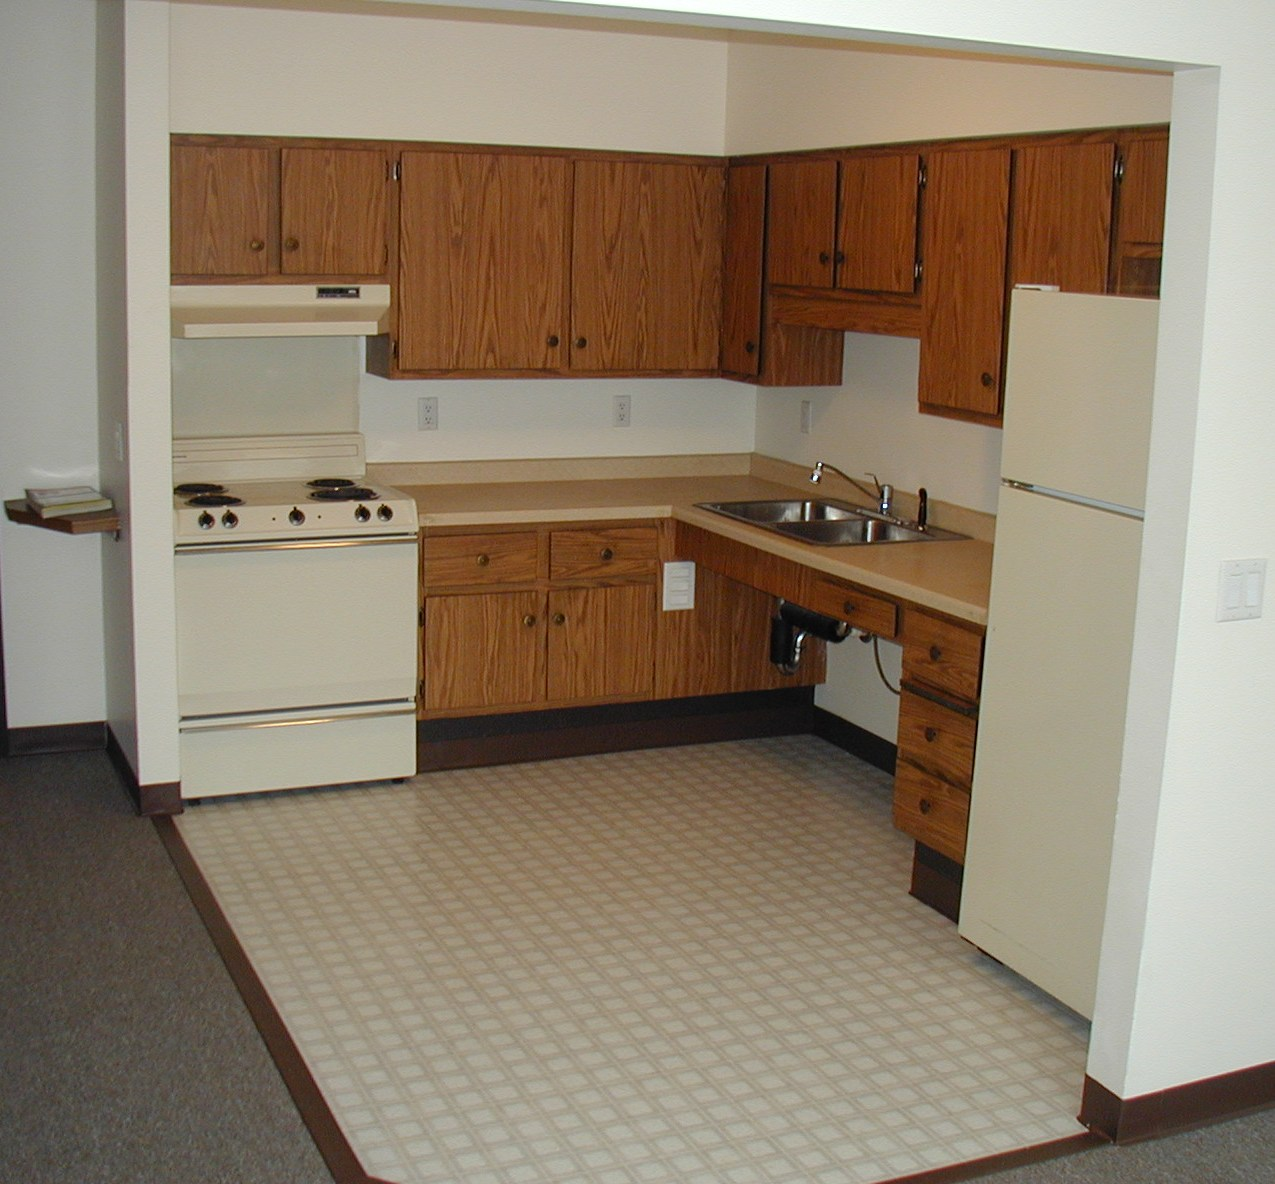 Warren Manor Apartments: Menomonie WI Subsidized, Low-Rent